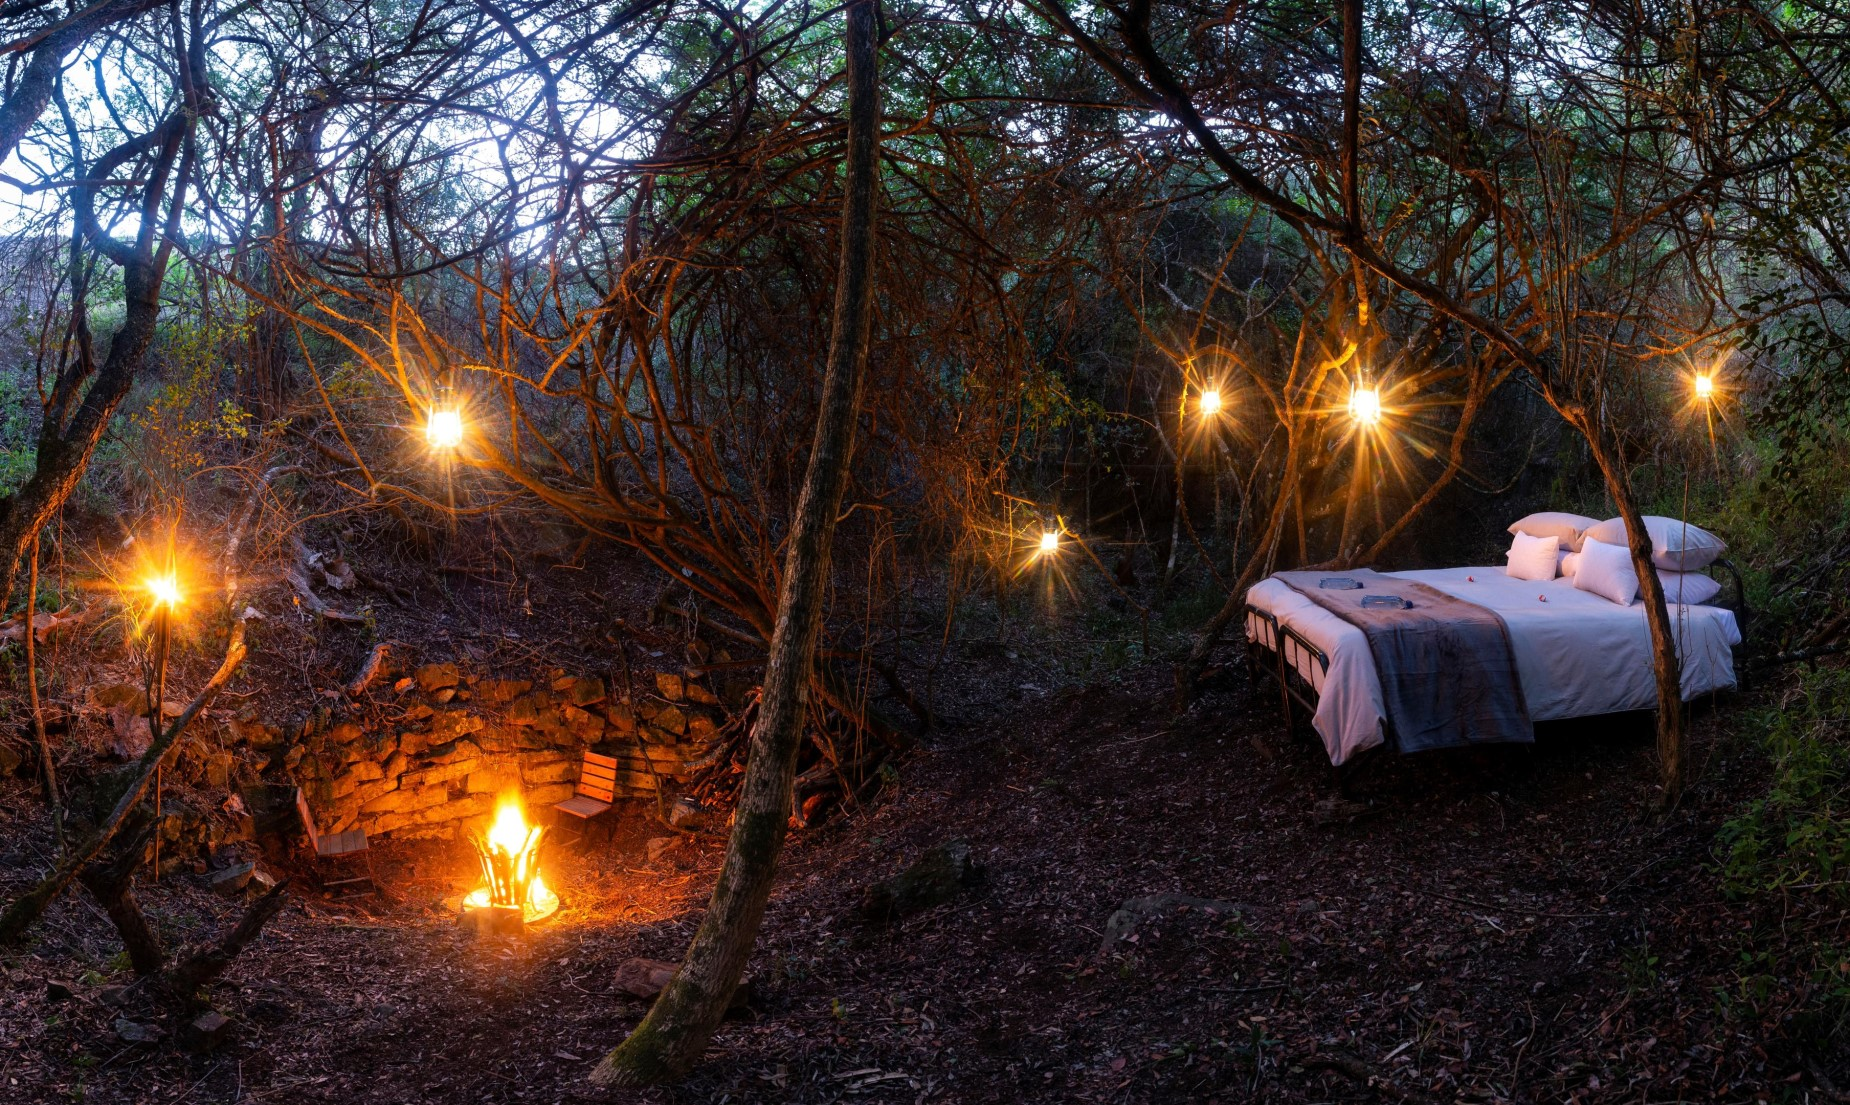 StarGazer beds with romantic beds and settings with lanterns